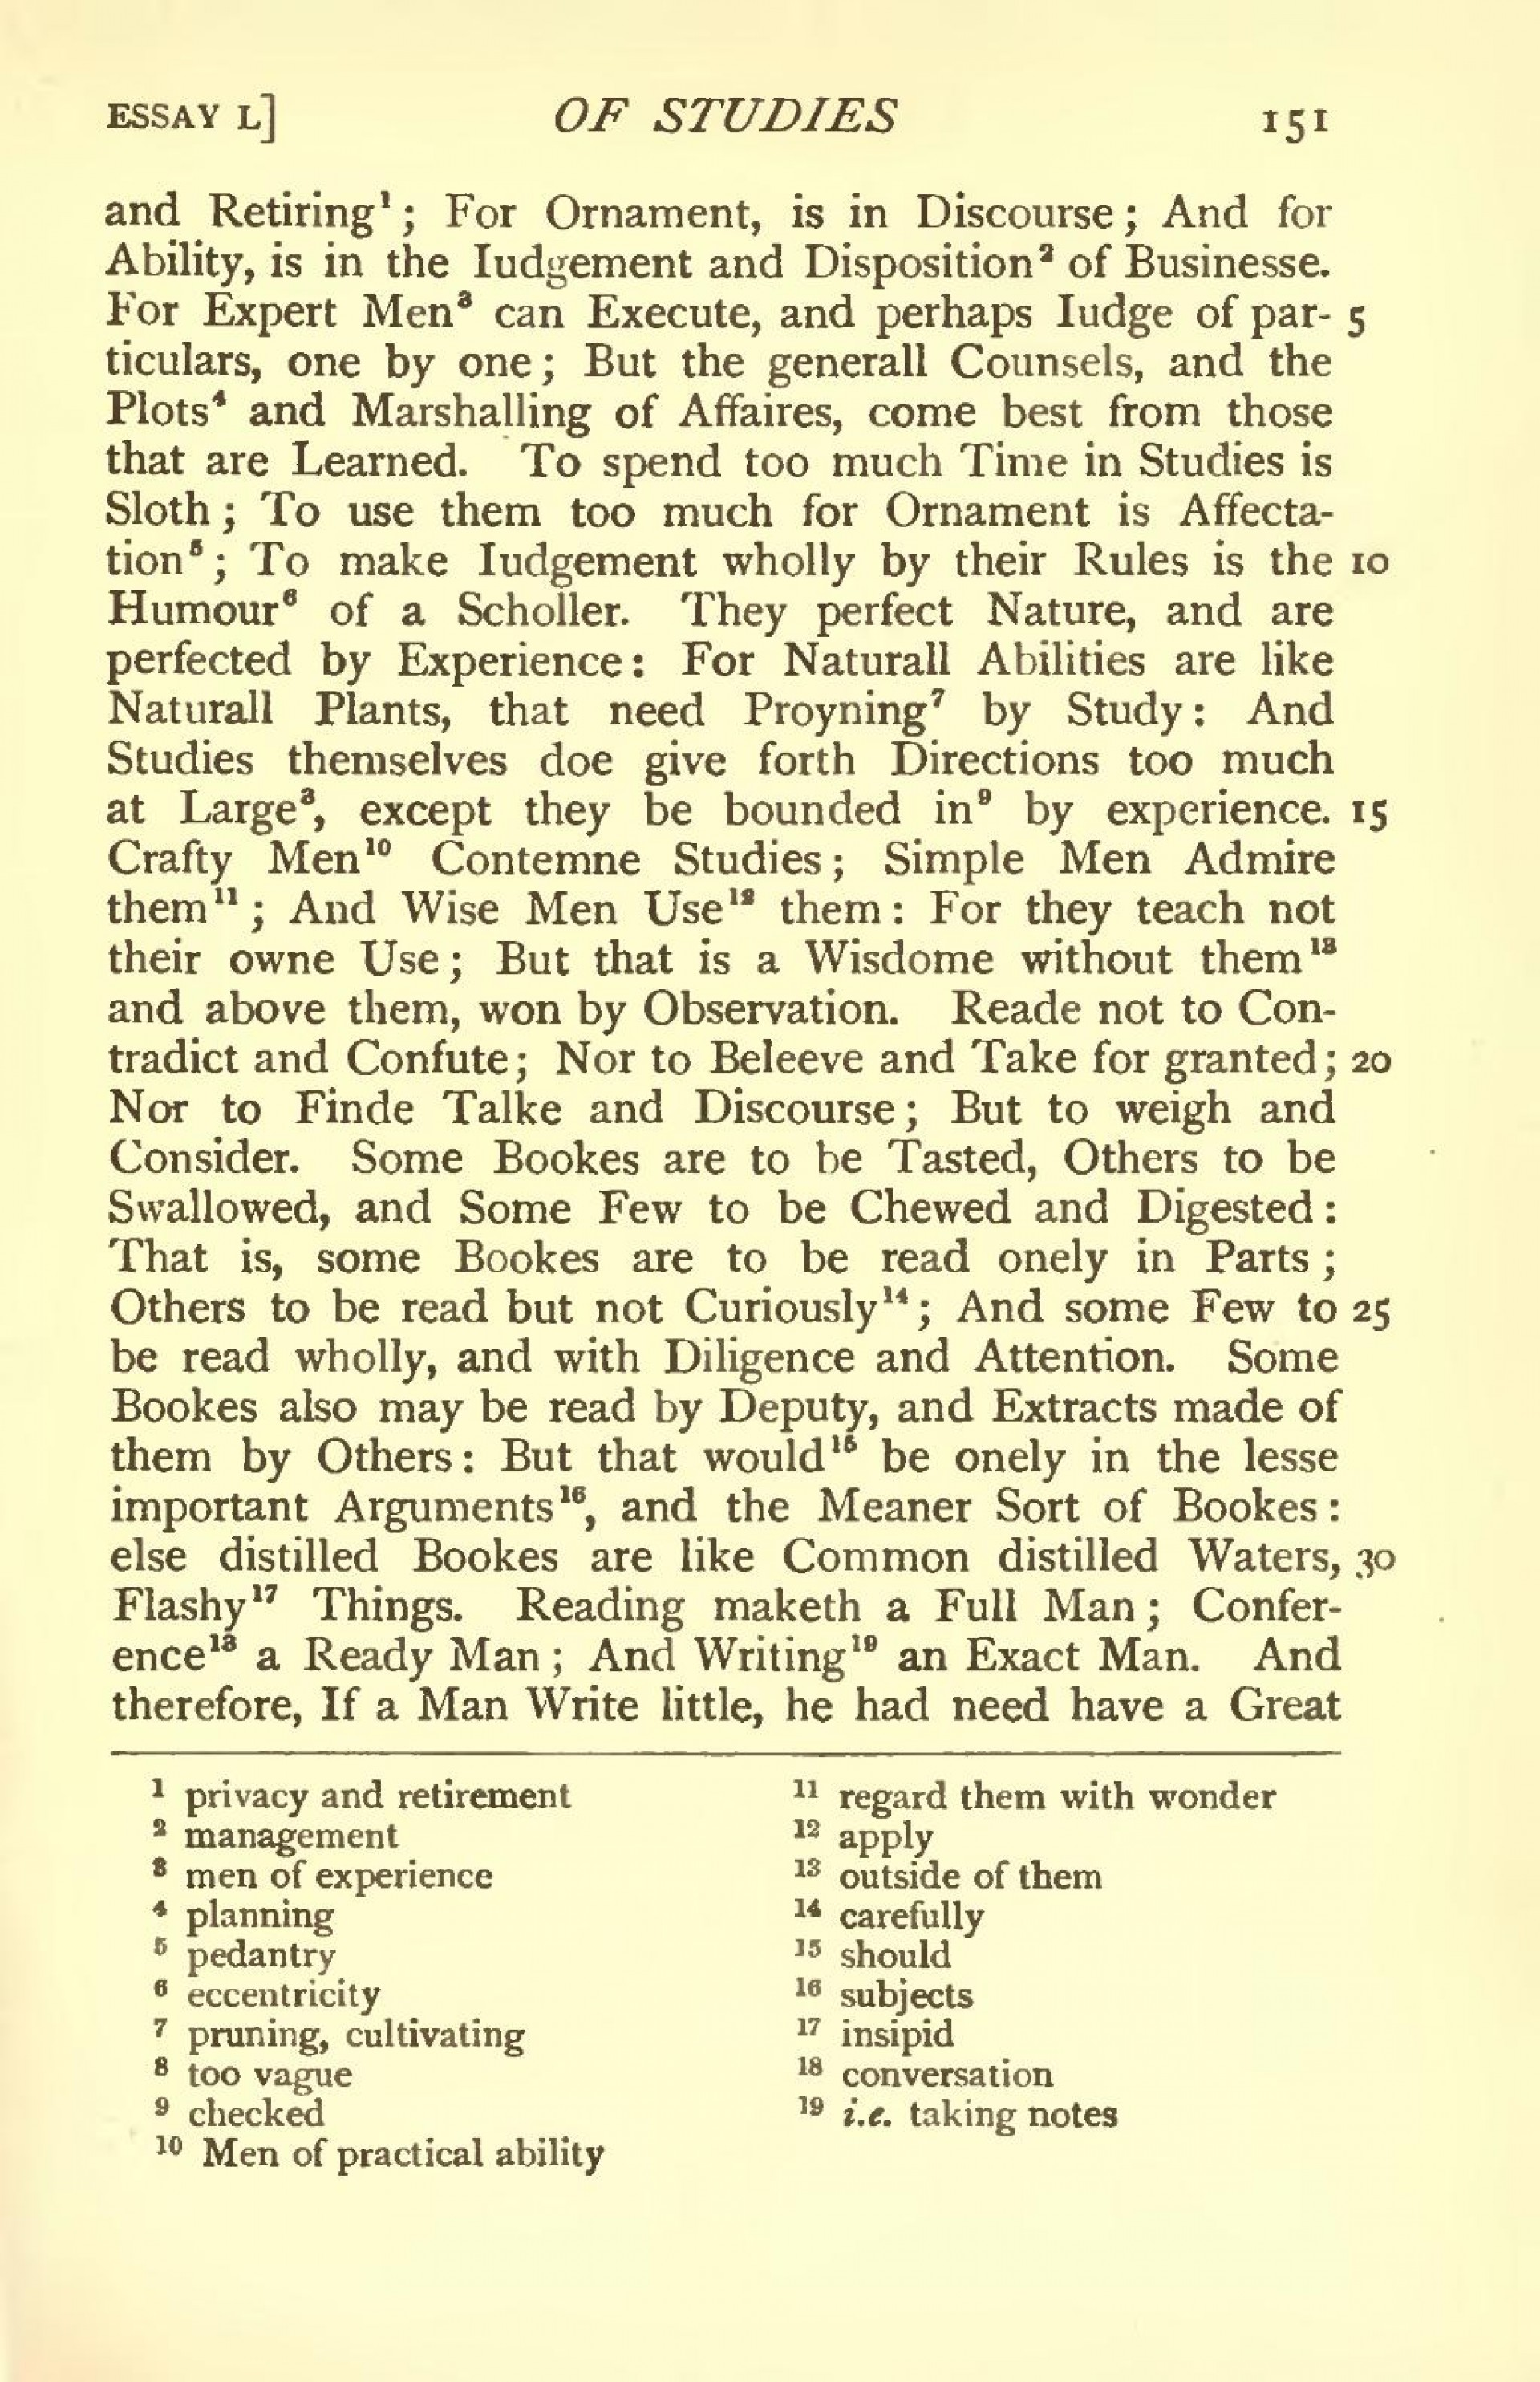 013 Essay Example Page175 1024px Bacons 1908 West Djvu Amazing Essays Francis Bacon Google Books Of Truth Quiz Bacon's Summary 1920